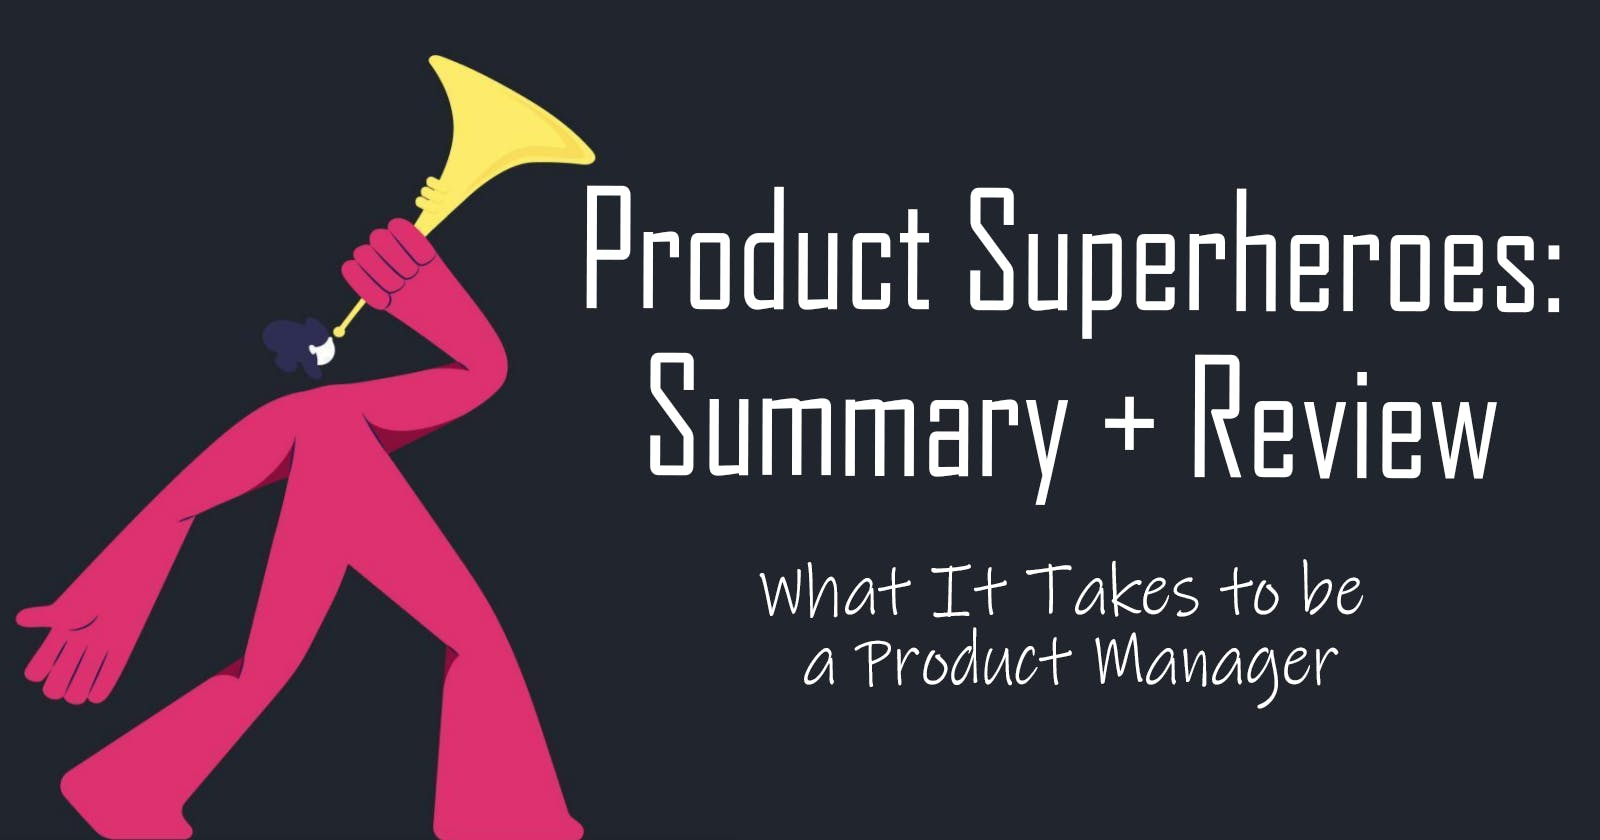 Product Superstories: What It Takes to be a Product Manager